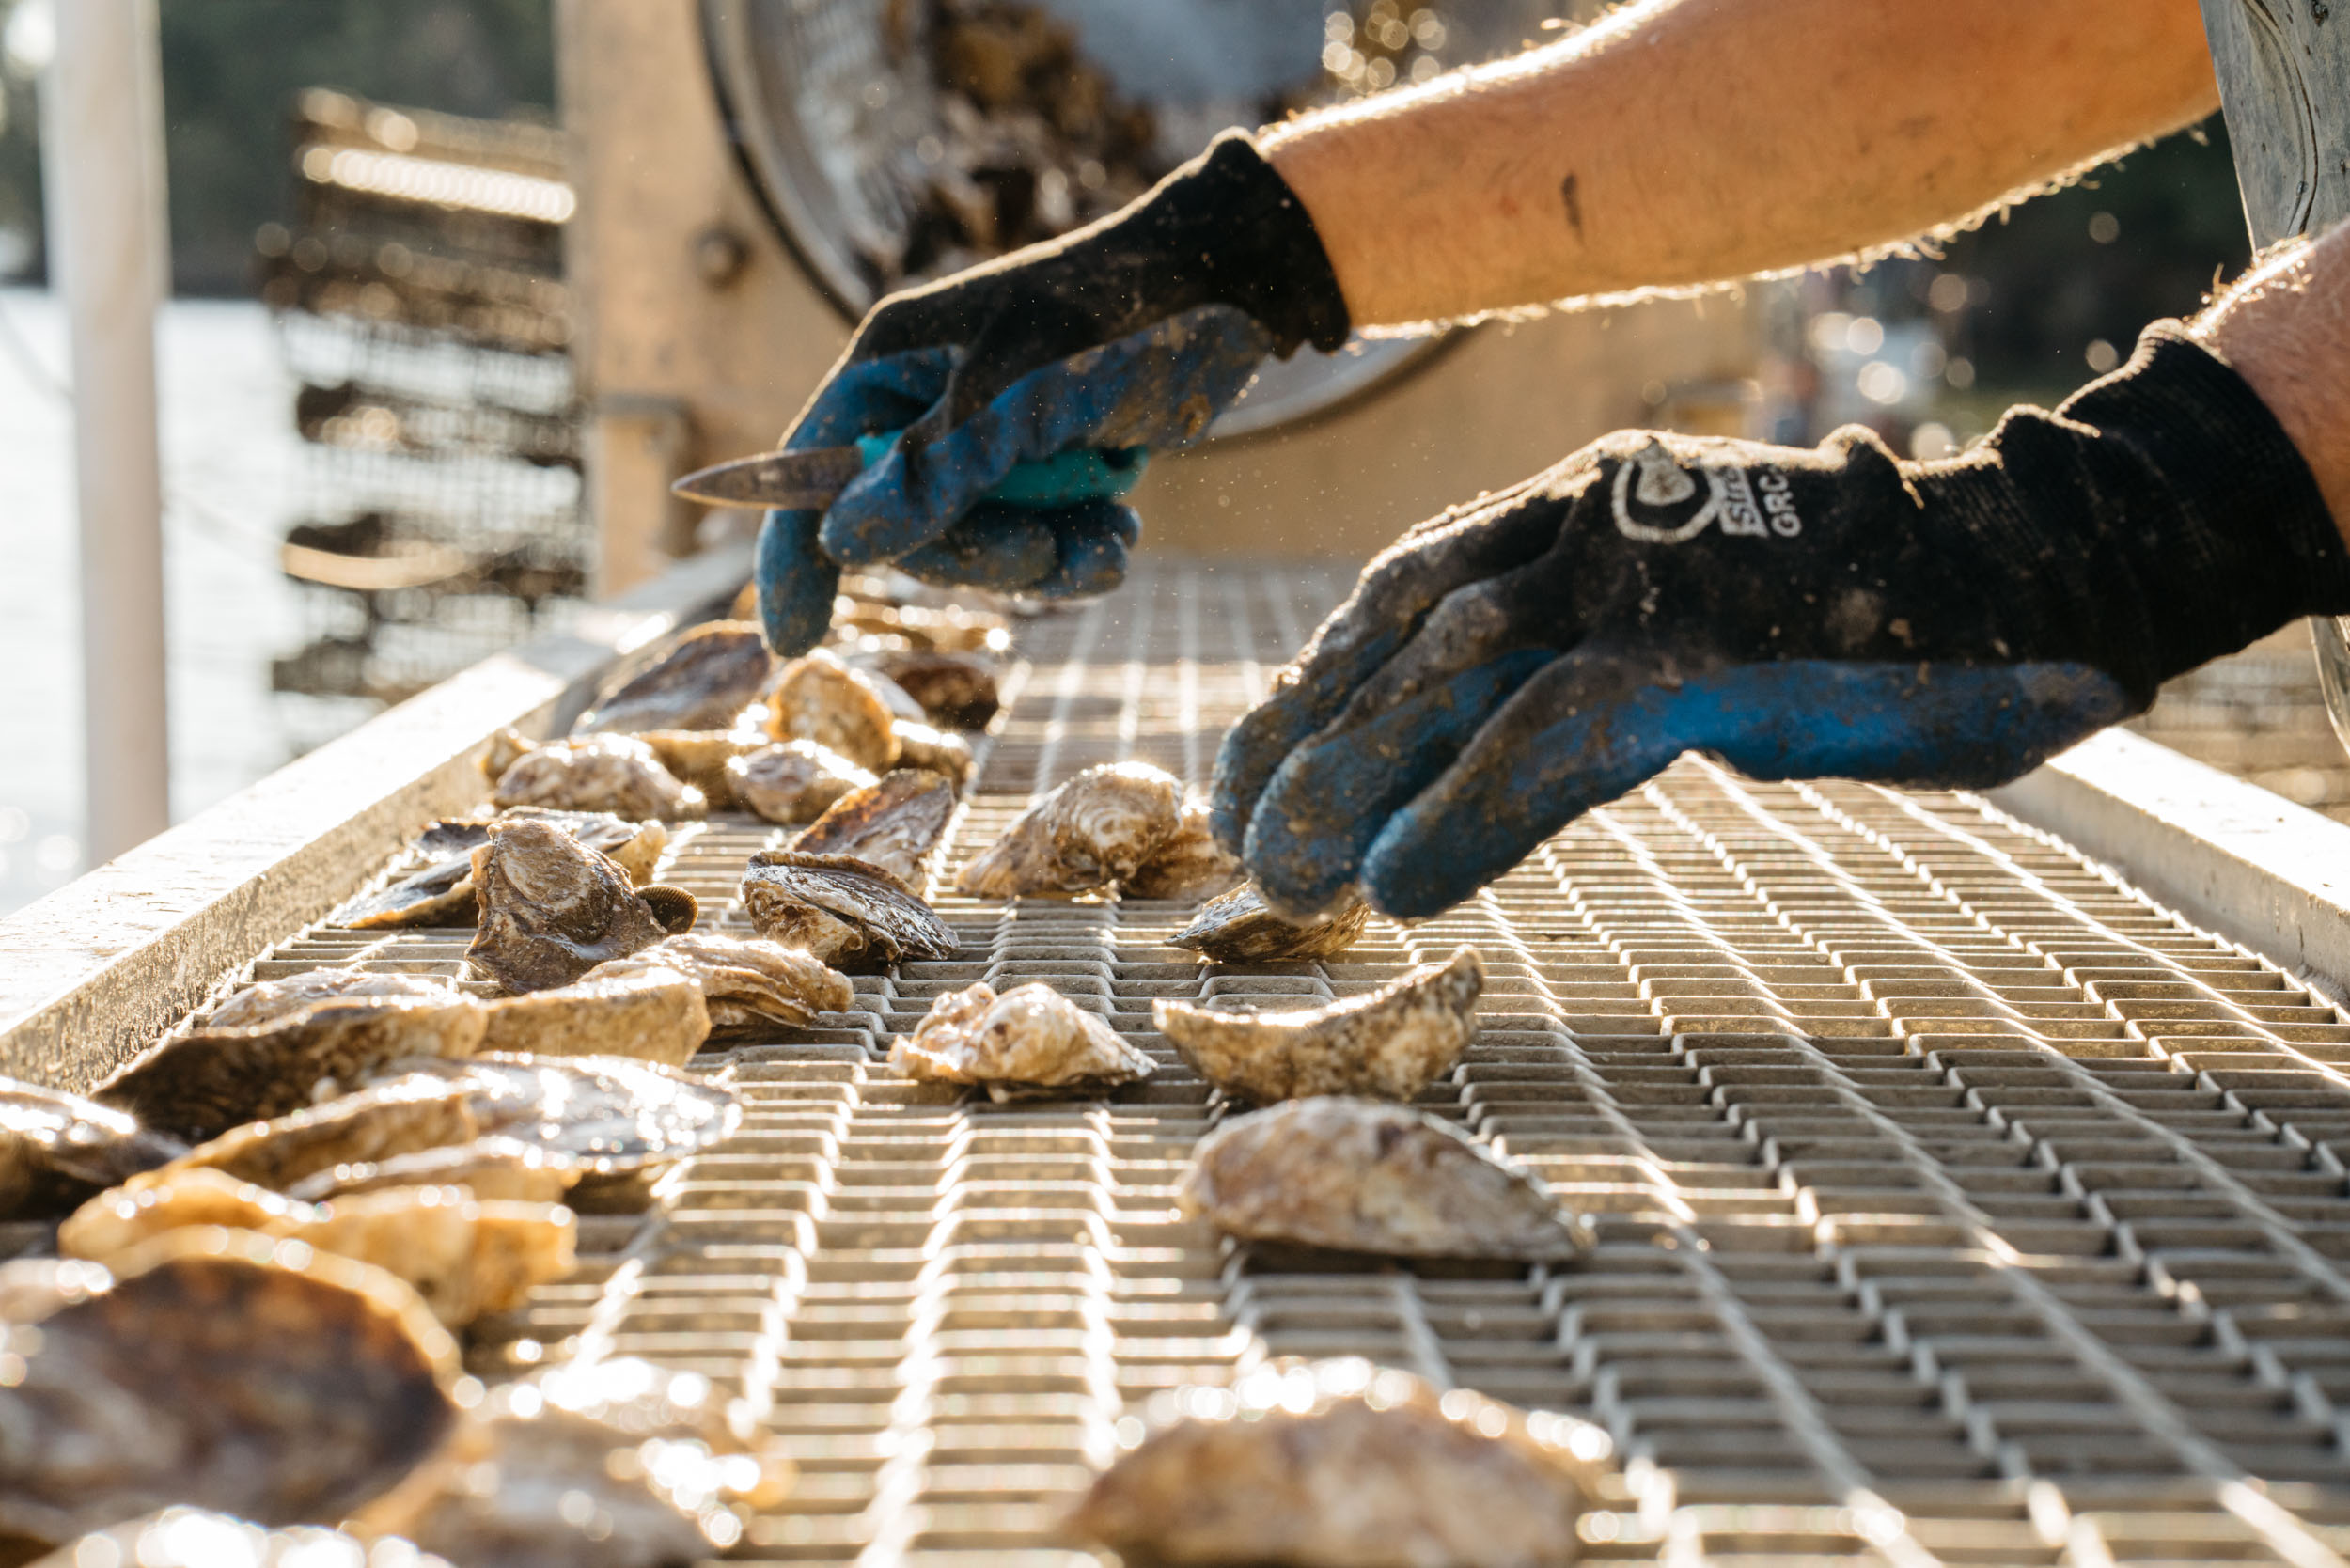 oysters being sorted on conveyor belt with gloves